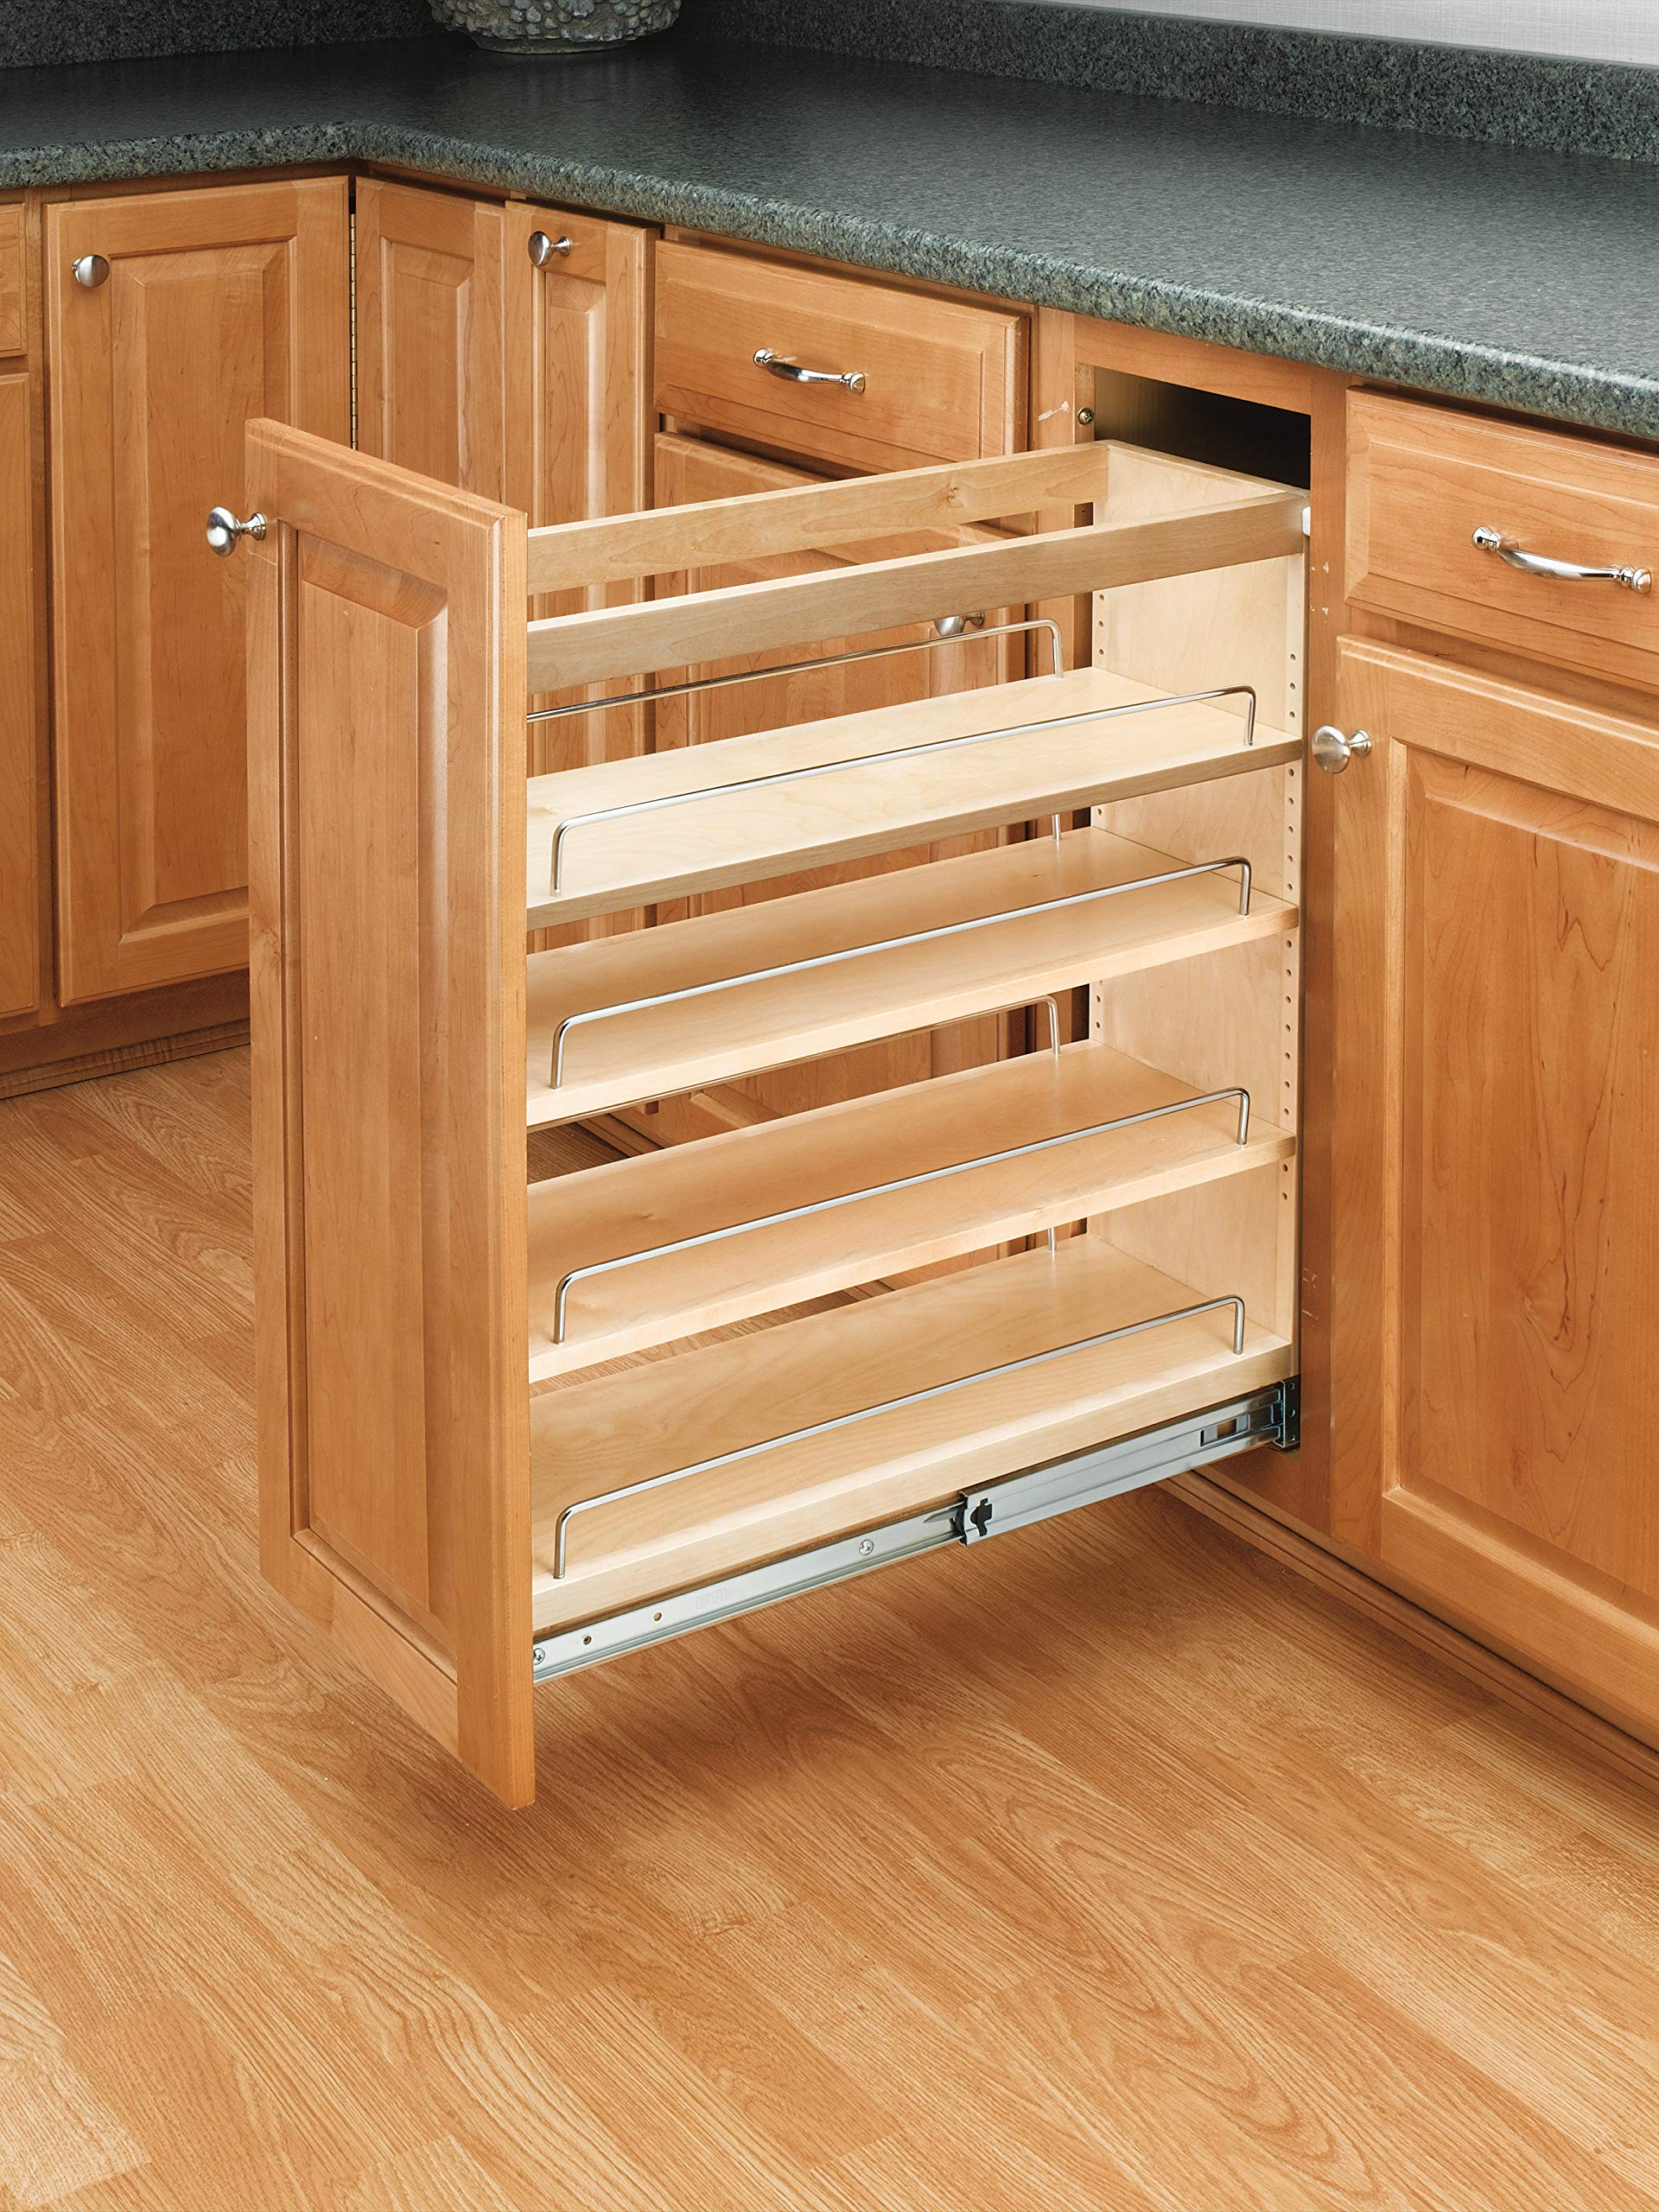 Rev-A-Shelf - 448-BC-5C - 5 in. Pull-Out Wood Base Cabinet Organizer by Rev-A-Shelf (Image #2)